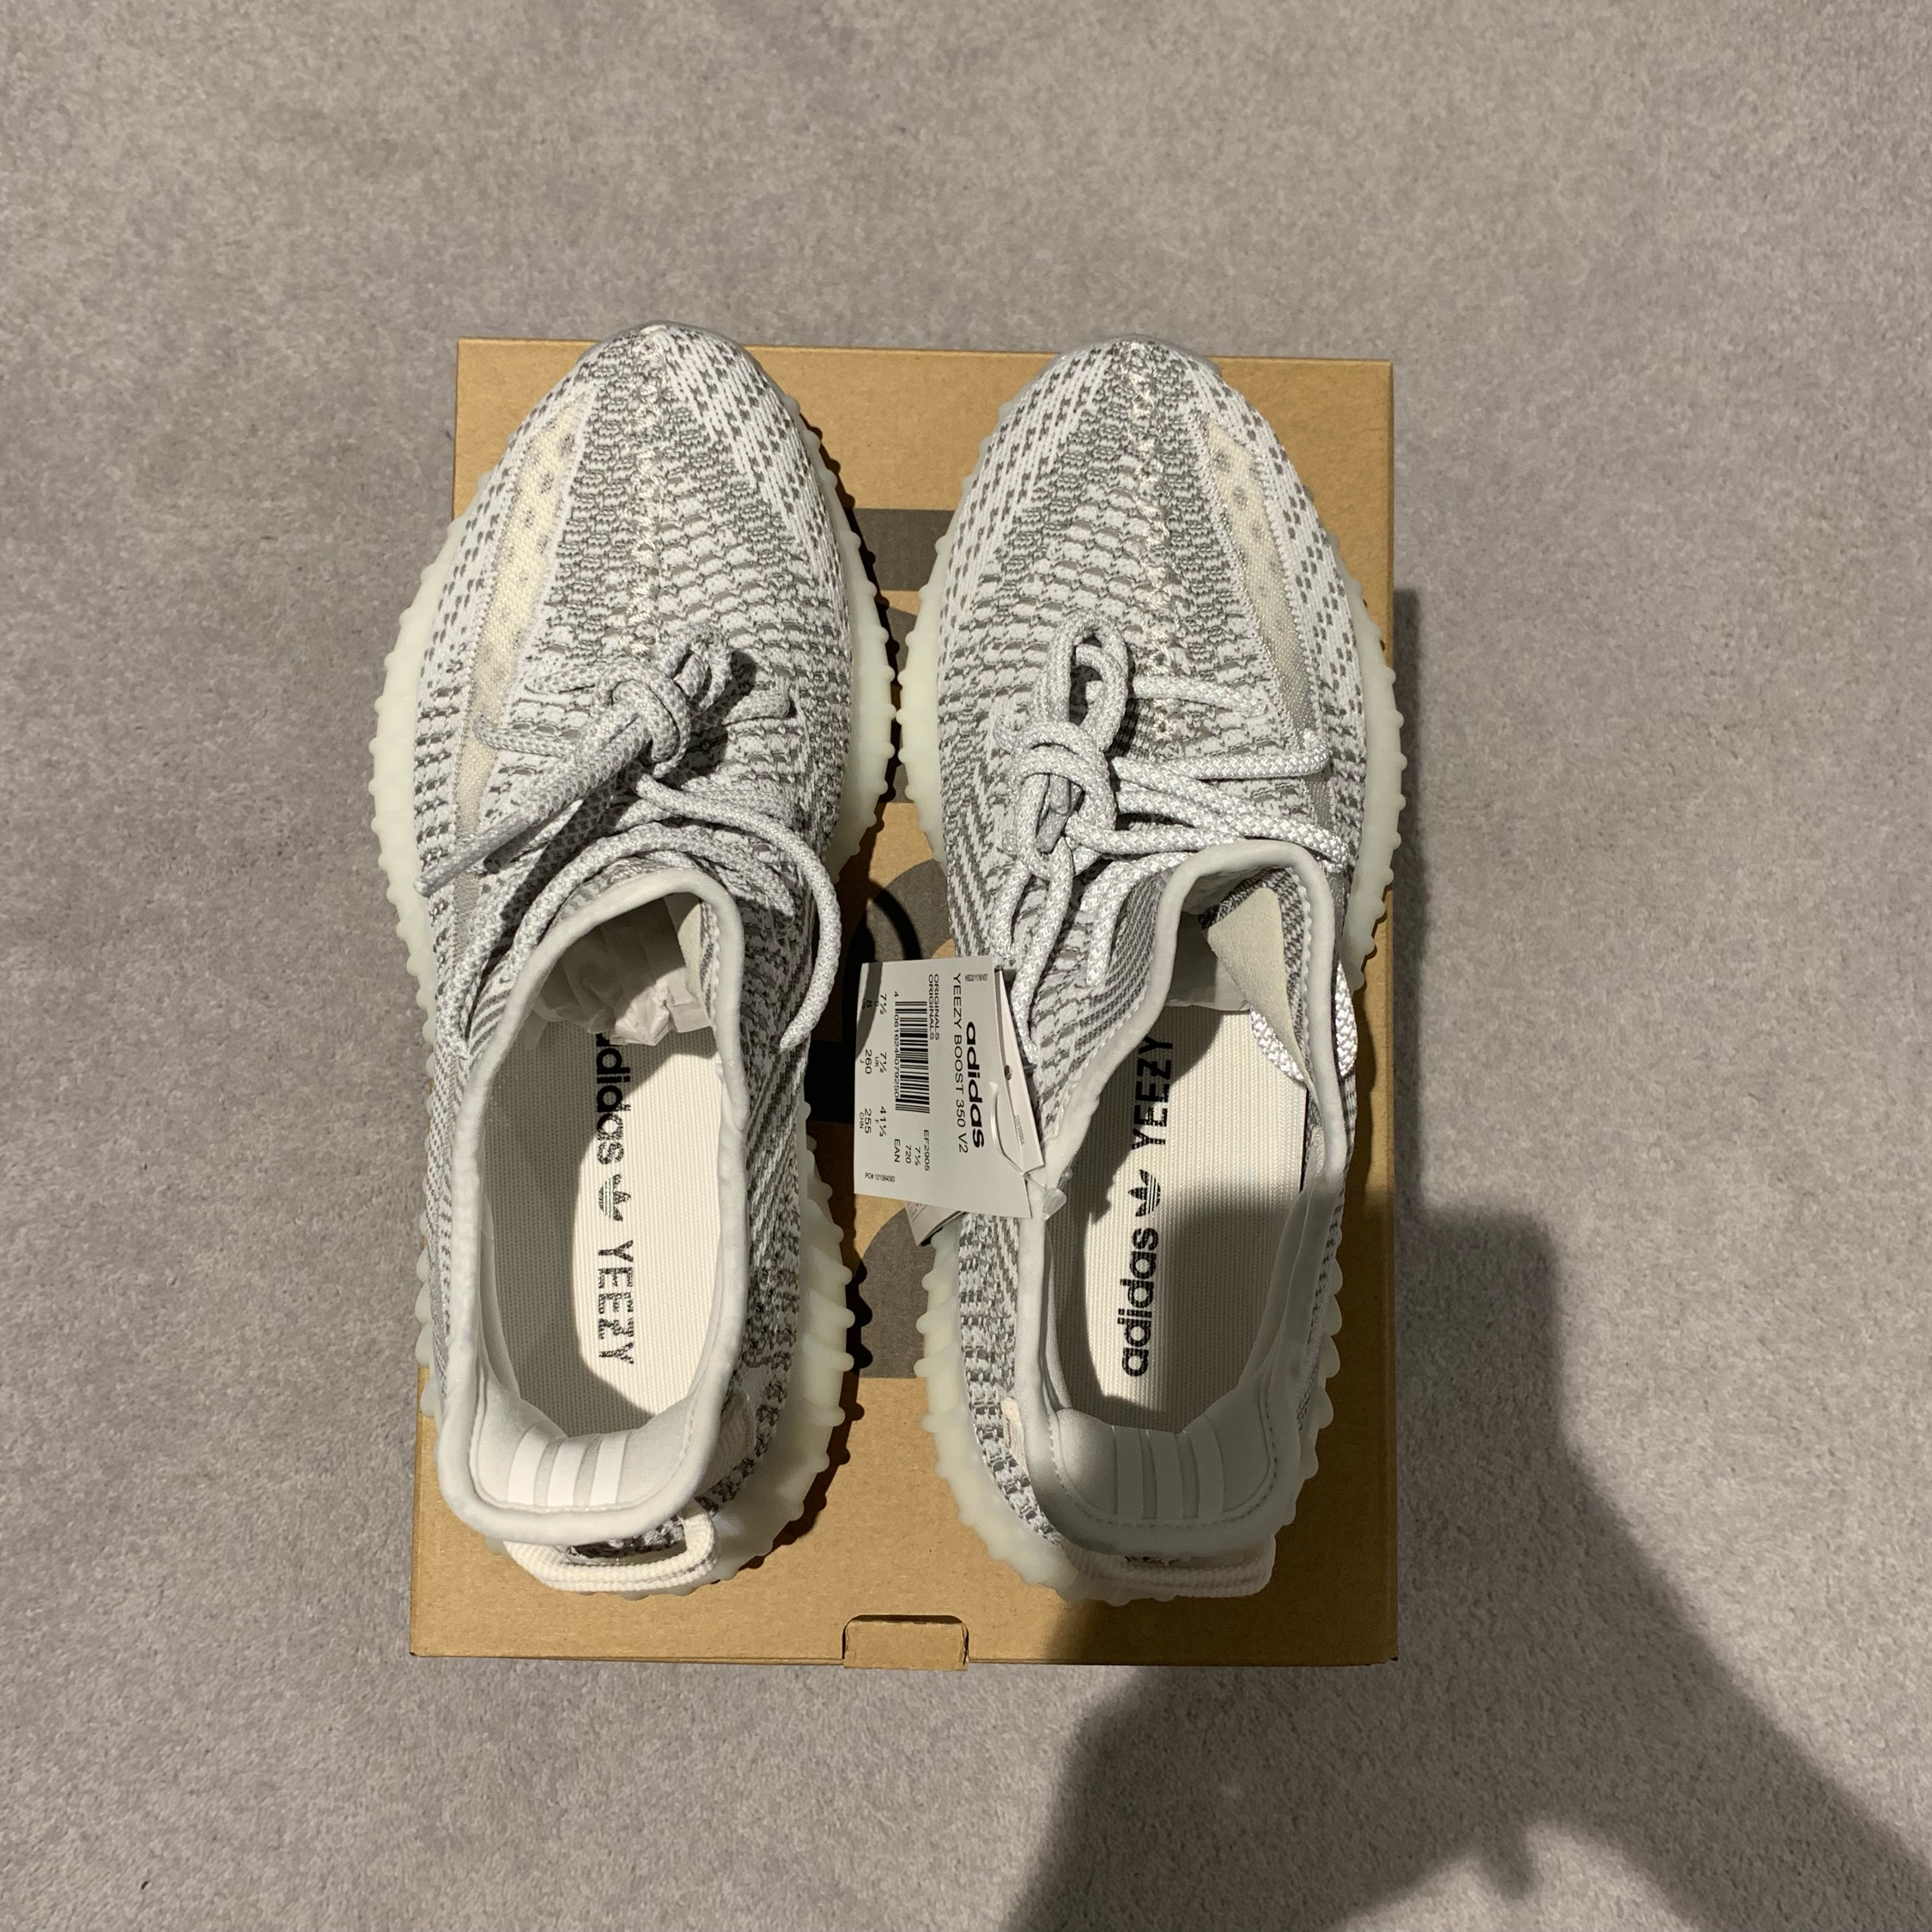 yeezy boost 350 v2 static stock on sale